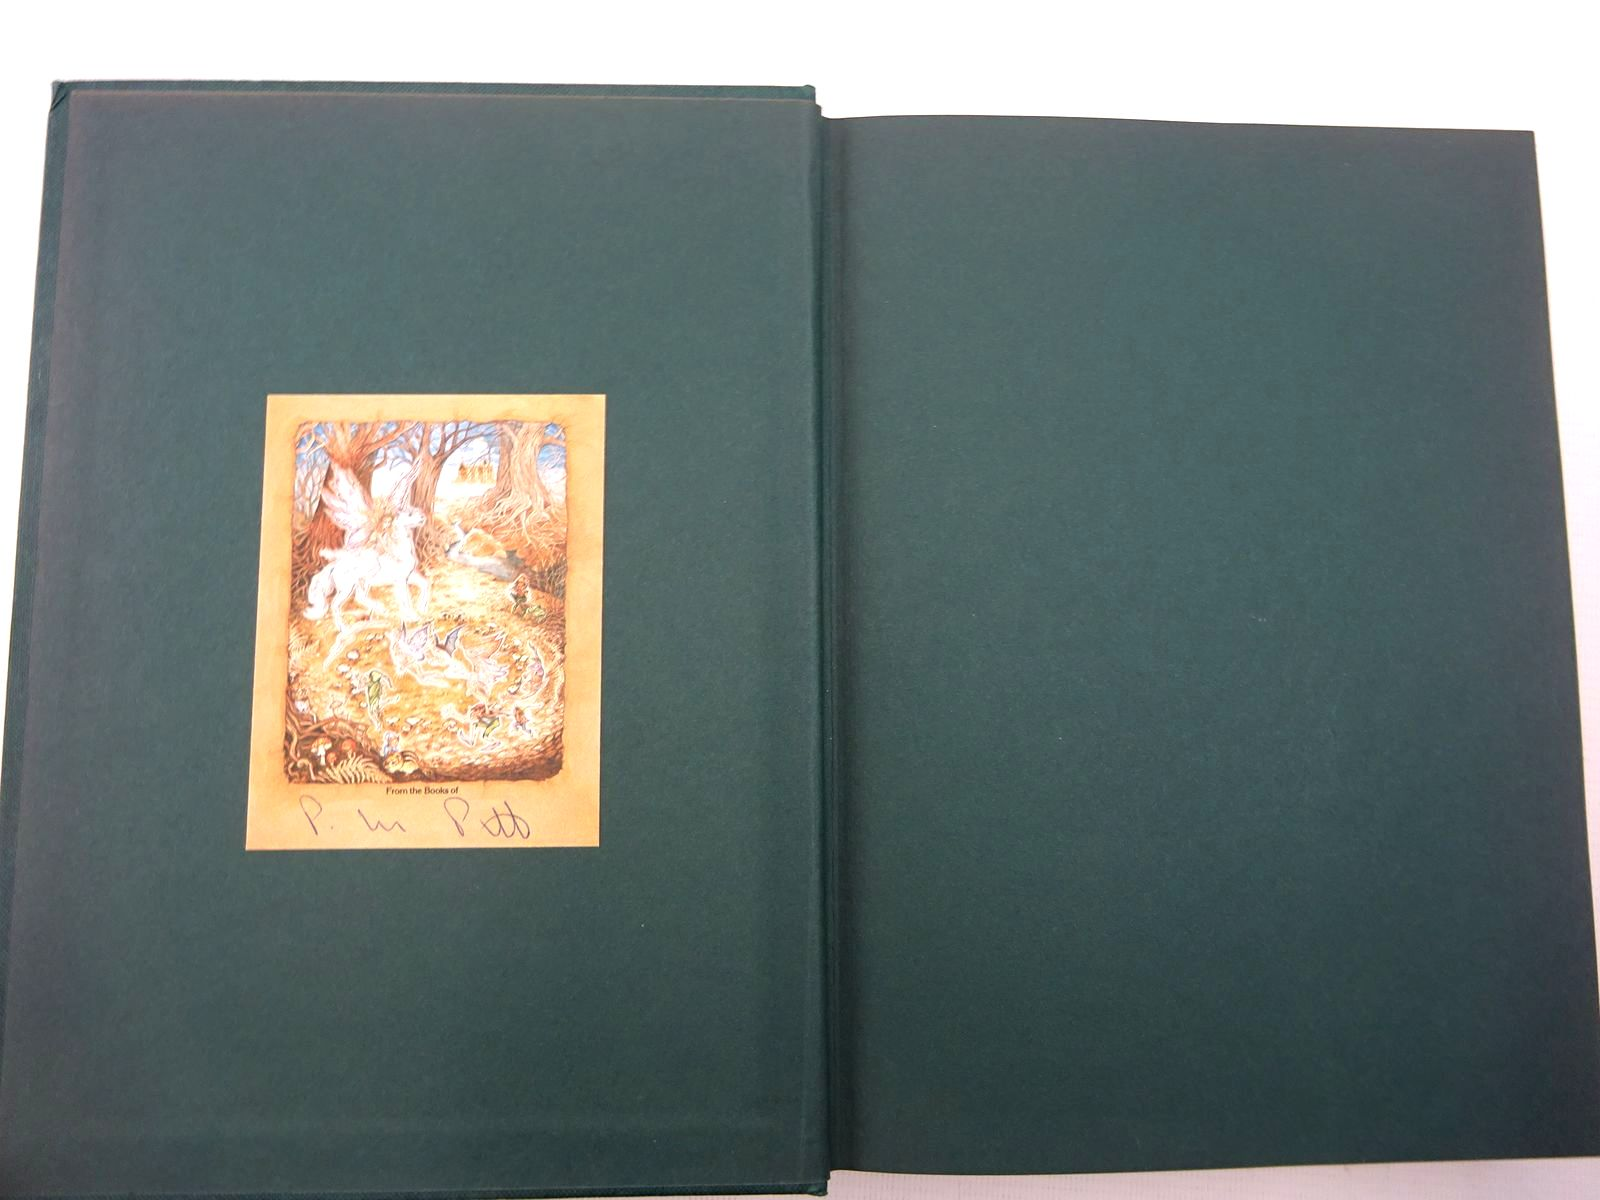 Photo of PETER PAN IN KENSINGTON GARDENS written by Barrie, J.M. illustrated by Rackham, Arthur published by Hodder & Stoughton Children's Books (STOCK CODE: 2128940)  for sale by Stella & Rose's Books